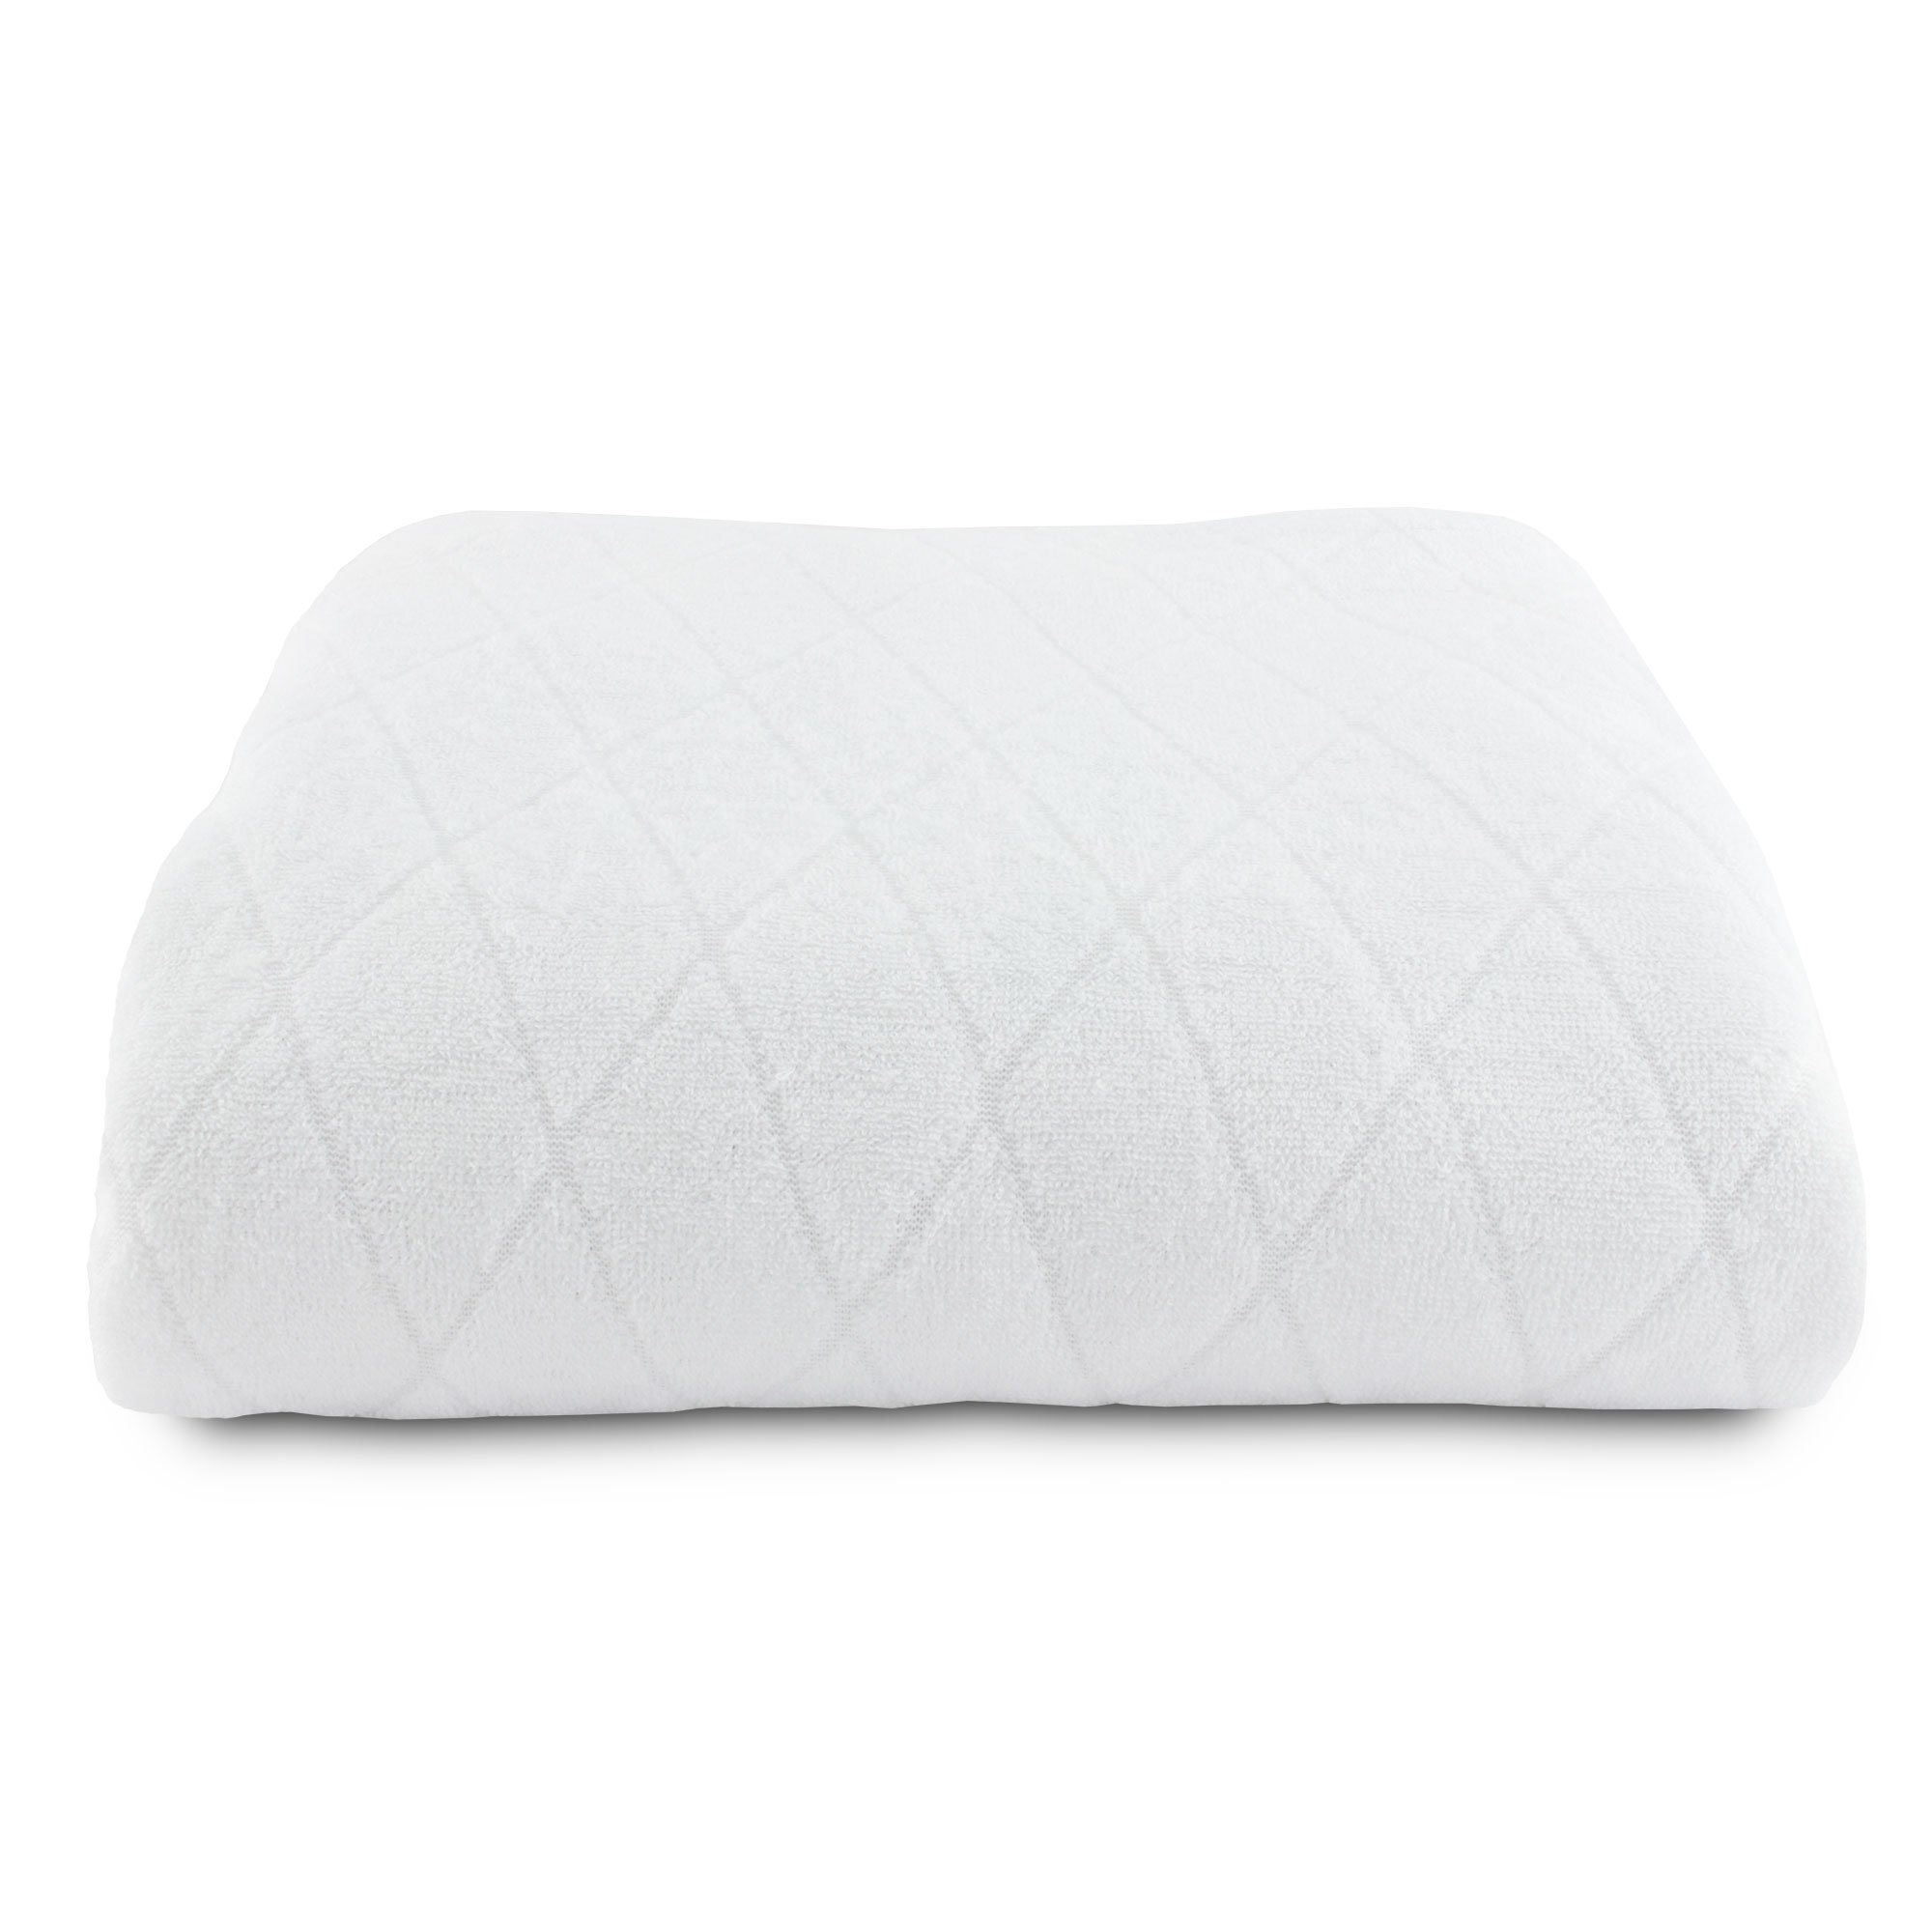 Medslant''BIG'' Wedge Pillow Cover for the Medslant BIG Wedge Pillow Only